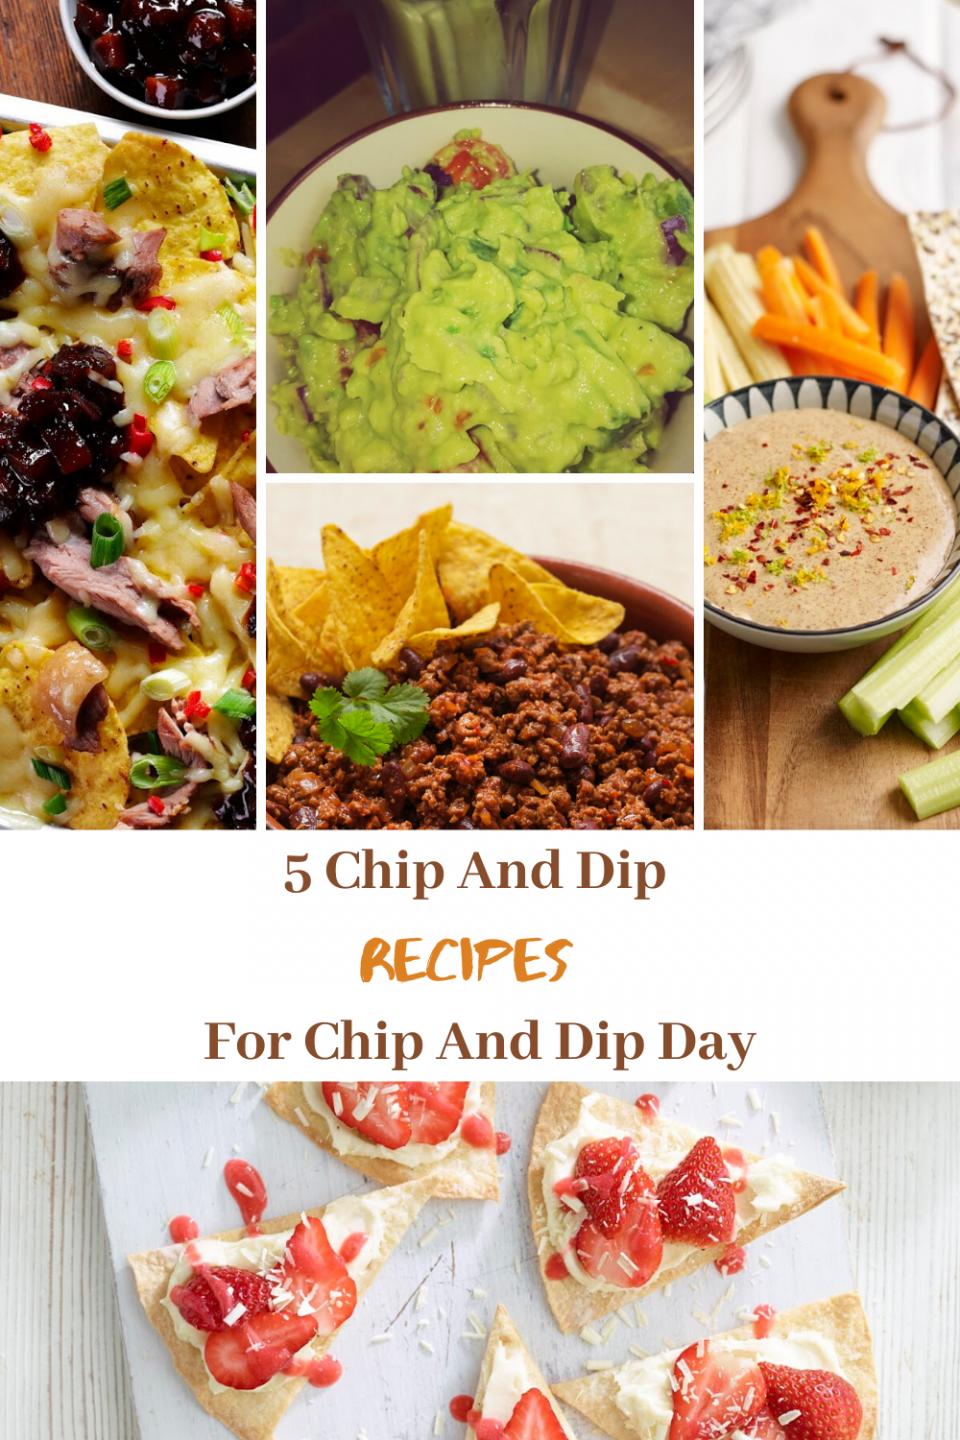 5 Chip And Dip Recipes For Chip And Dip Day